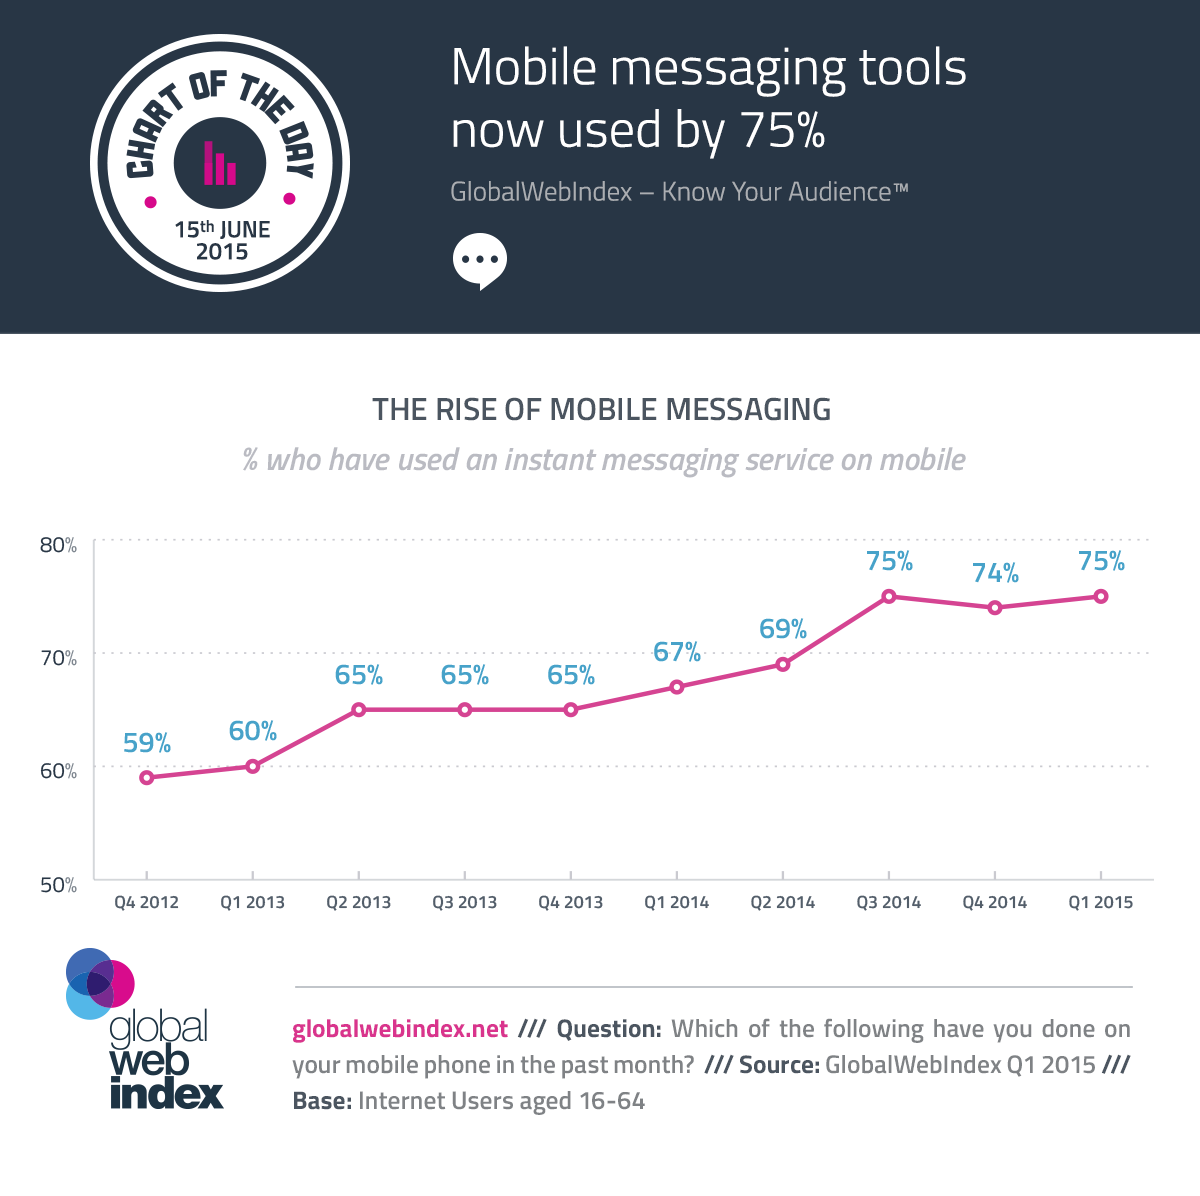 15th-June-2015-Mobile-messaging-tools-now-used-by-75